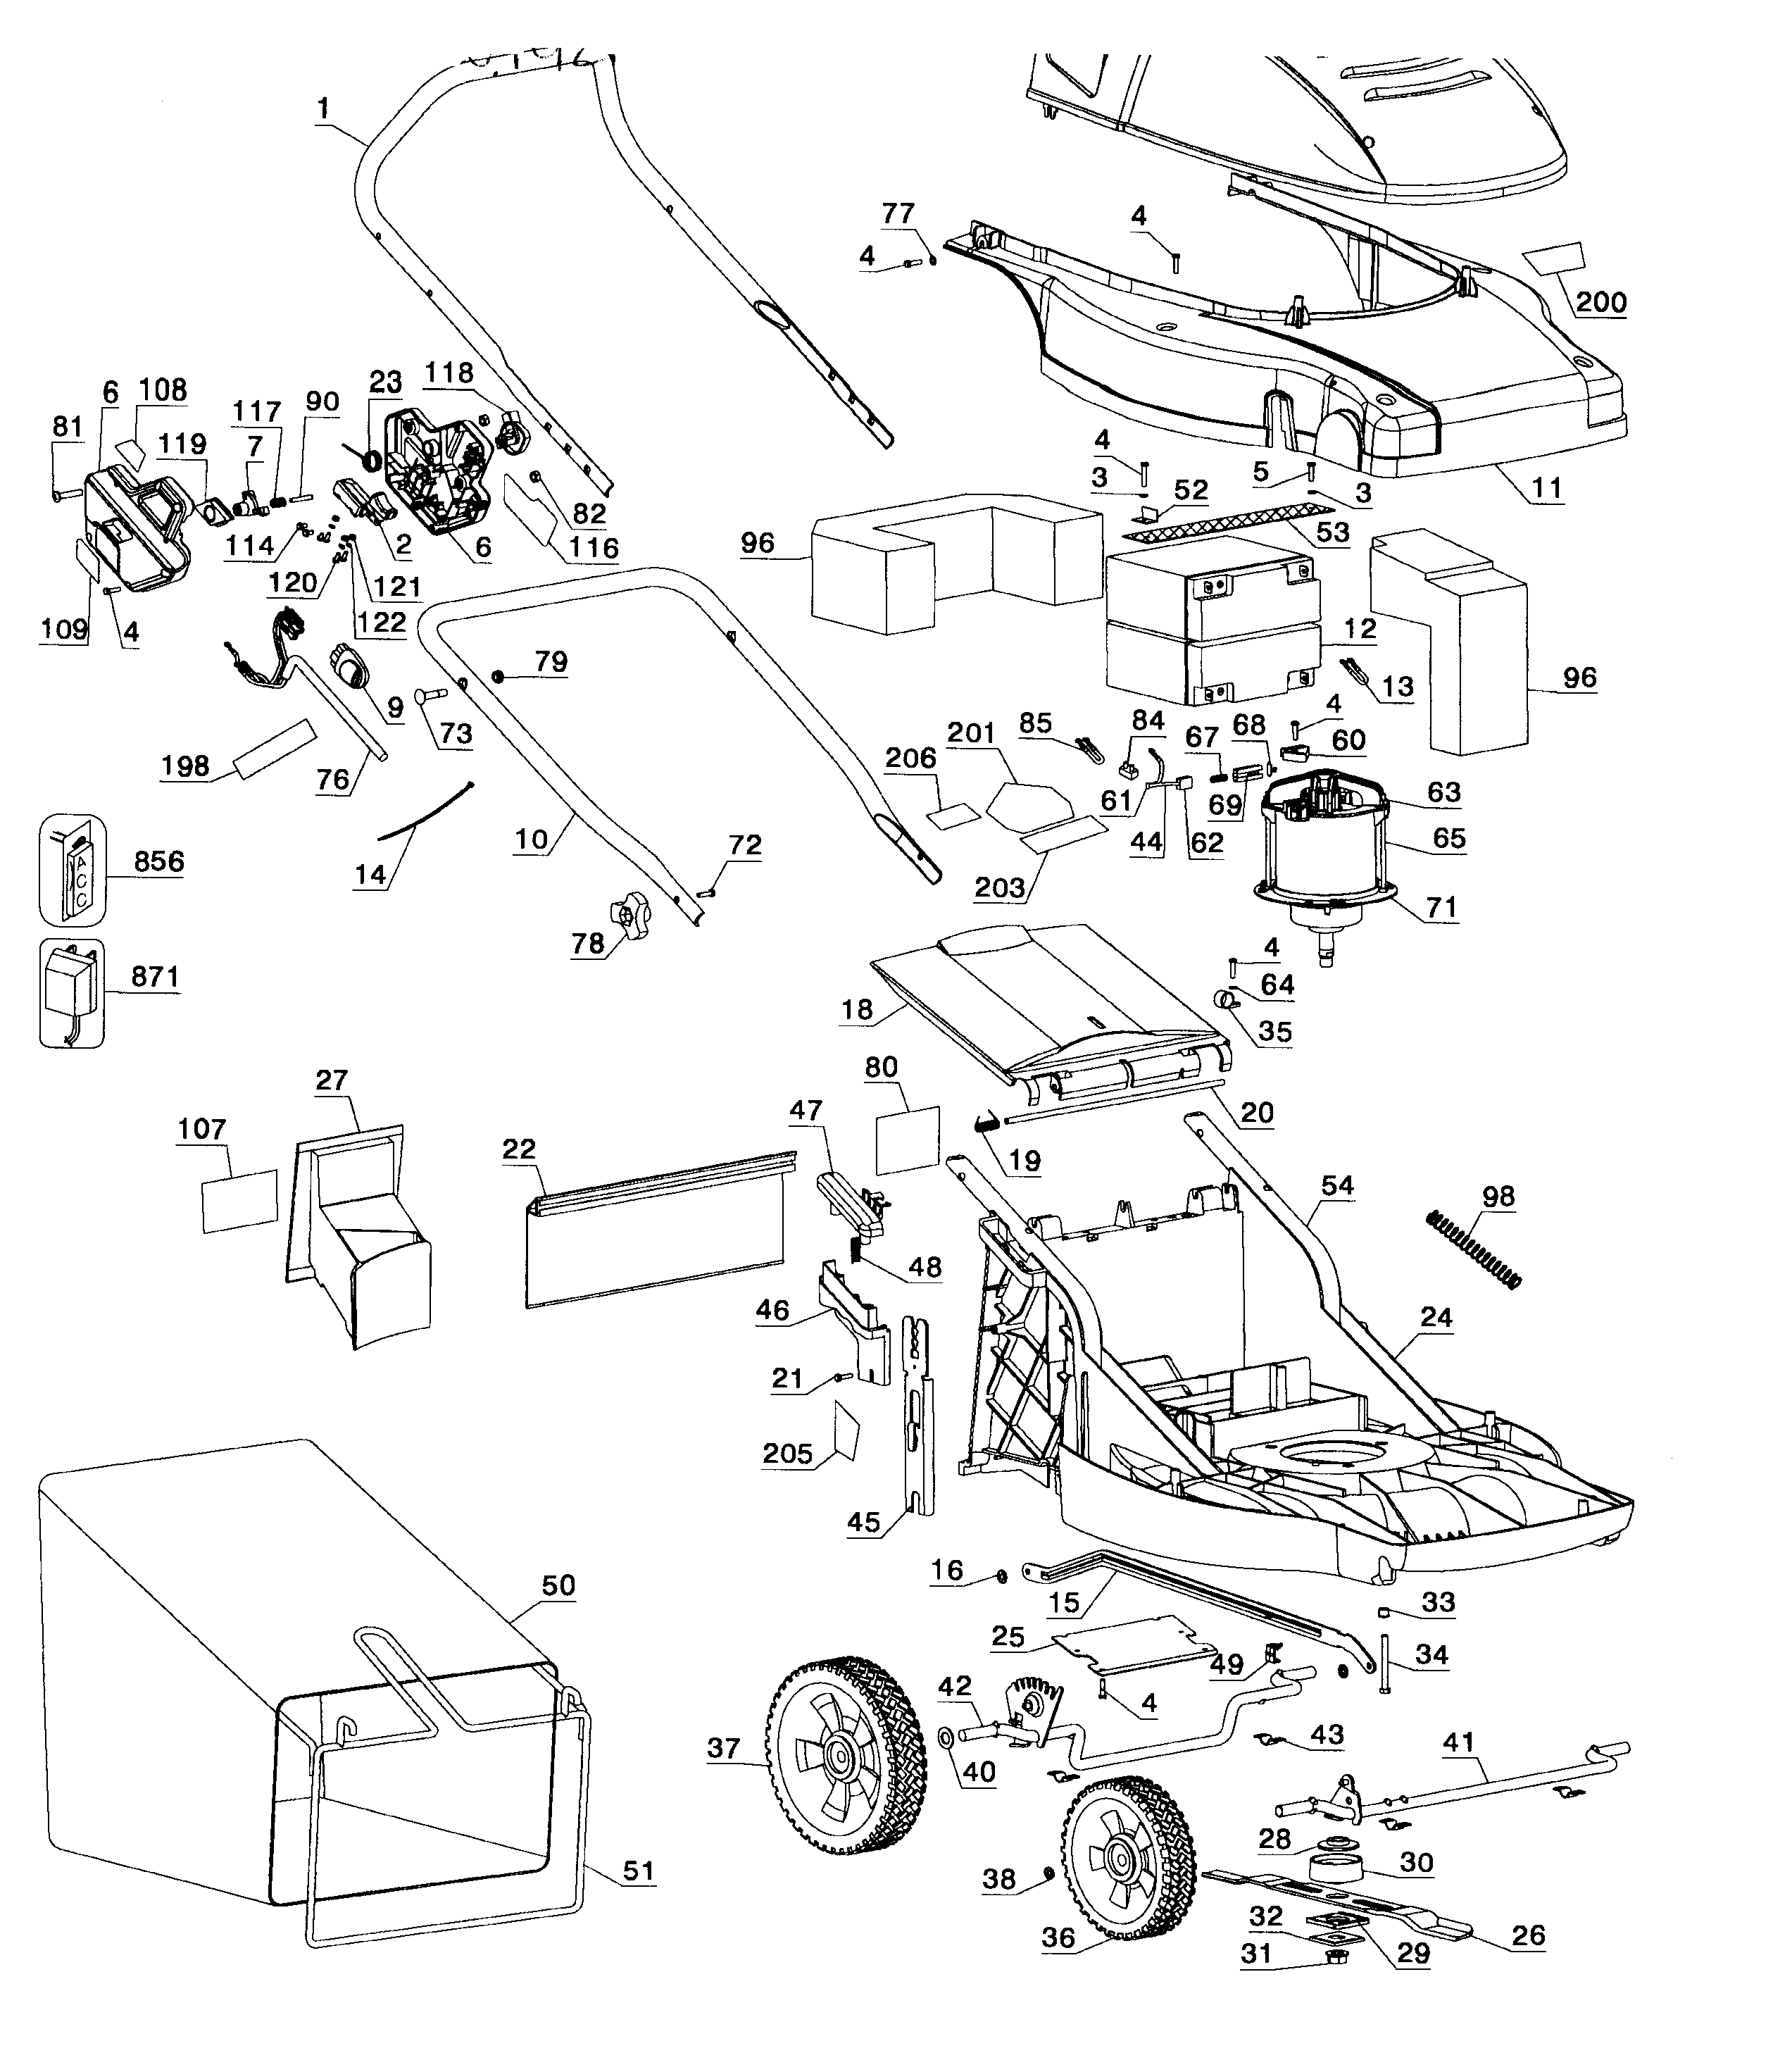 Lawn Mower Diagram And Parts List For Black Decker